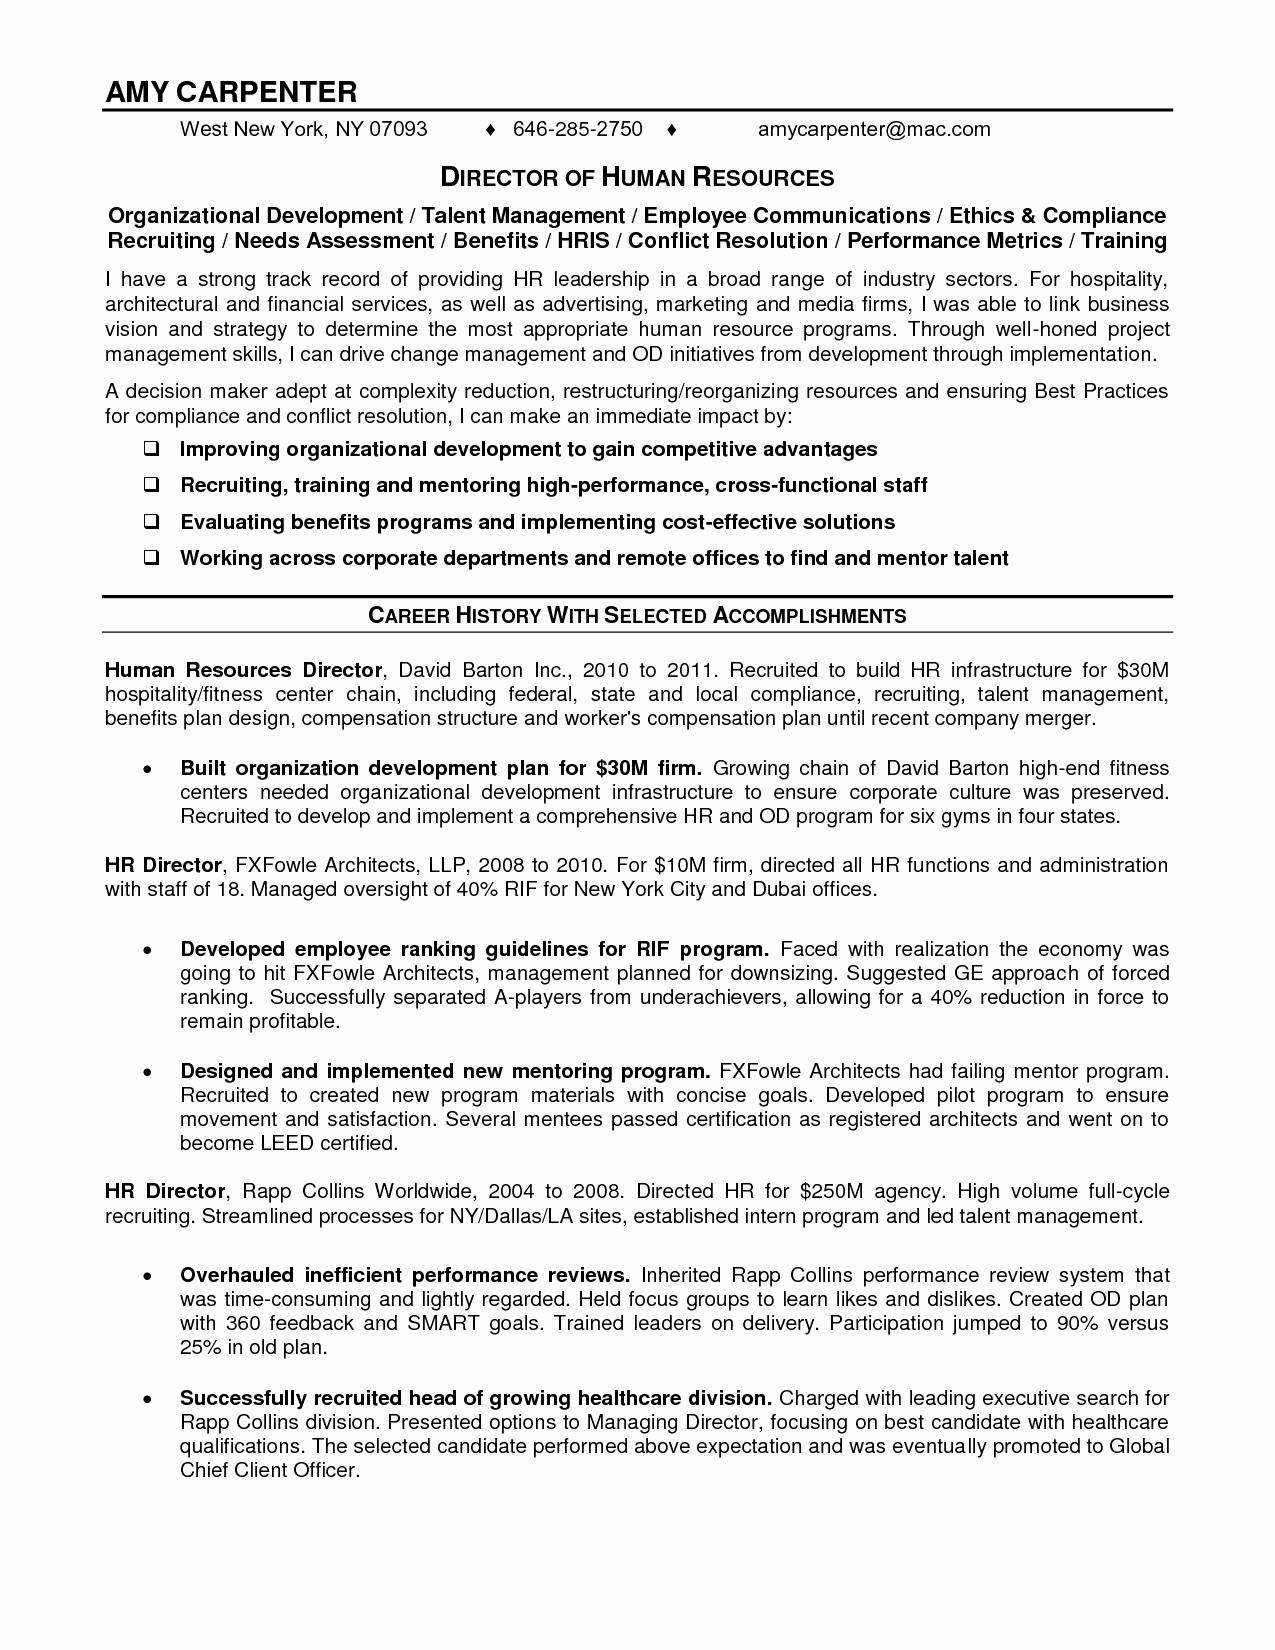 Hiring Letter Template - Dear Hiring Manager Cover Letter Sample New Request Letter format to